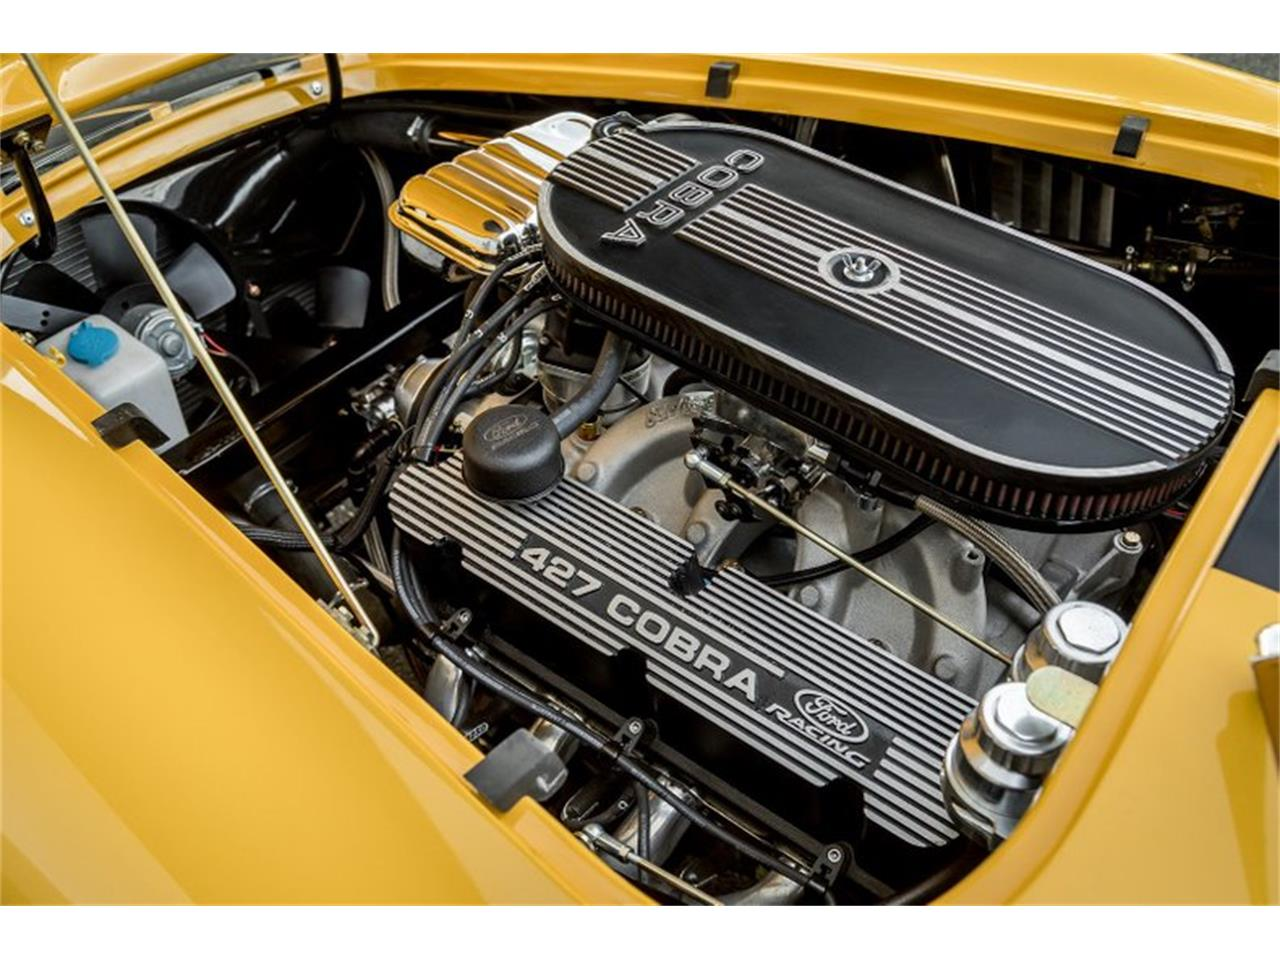 1965 Superformance MKIII (CC-1311545) for sale in Irvine, California